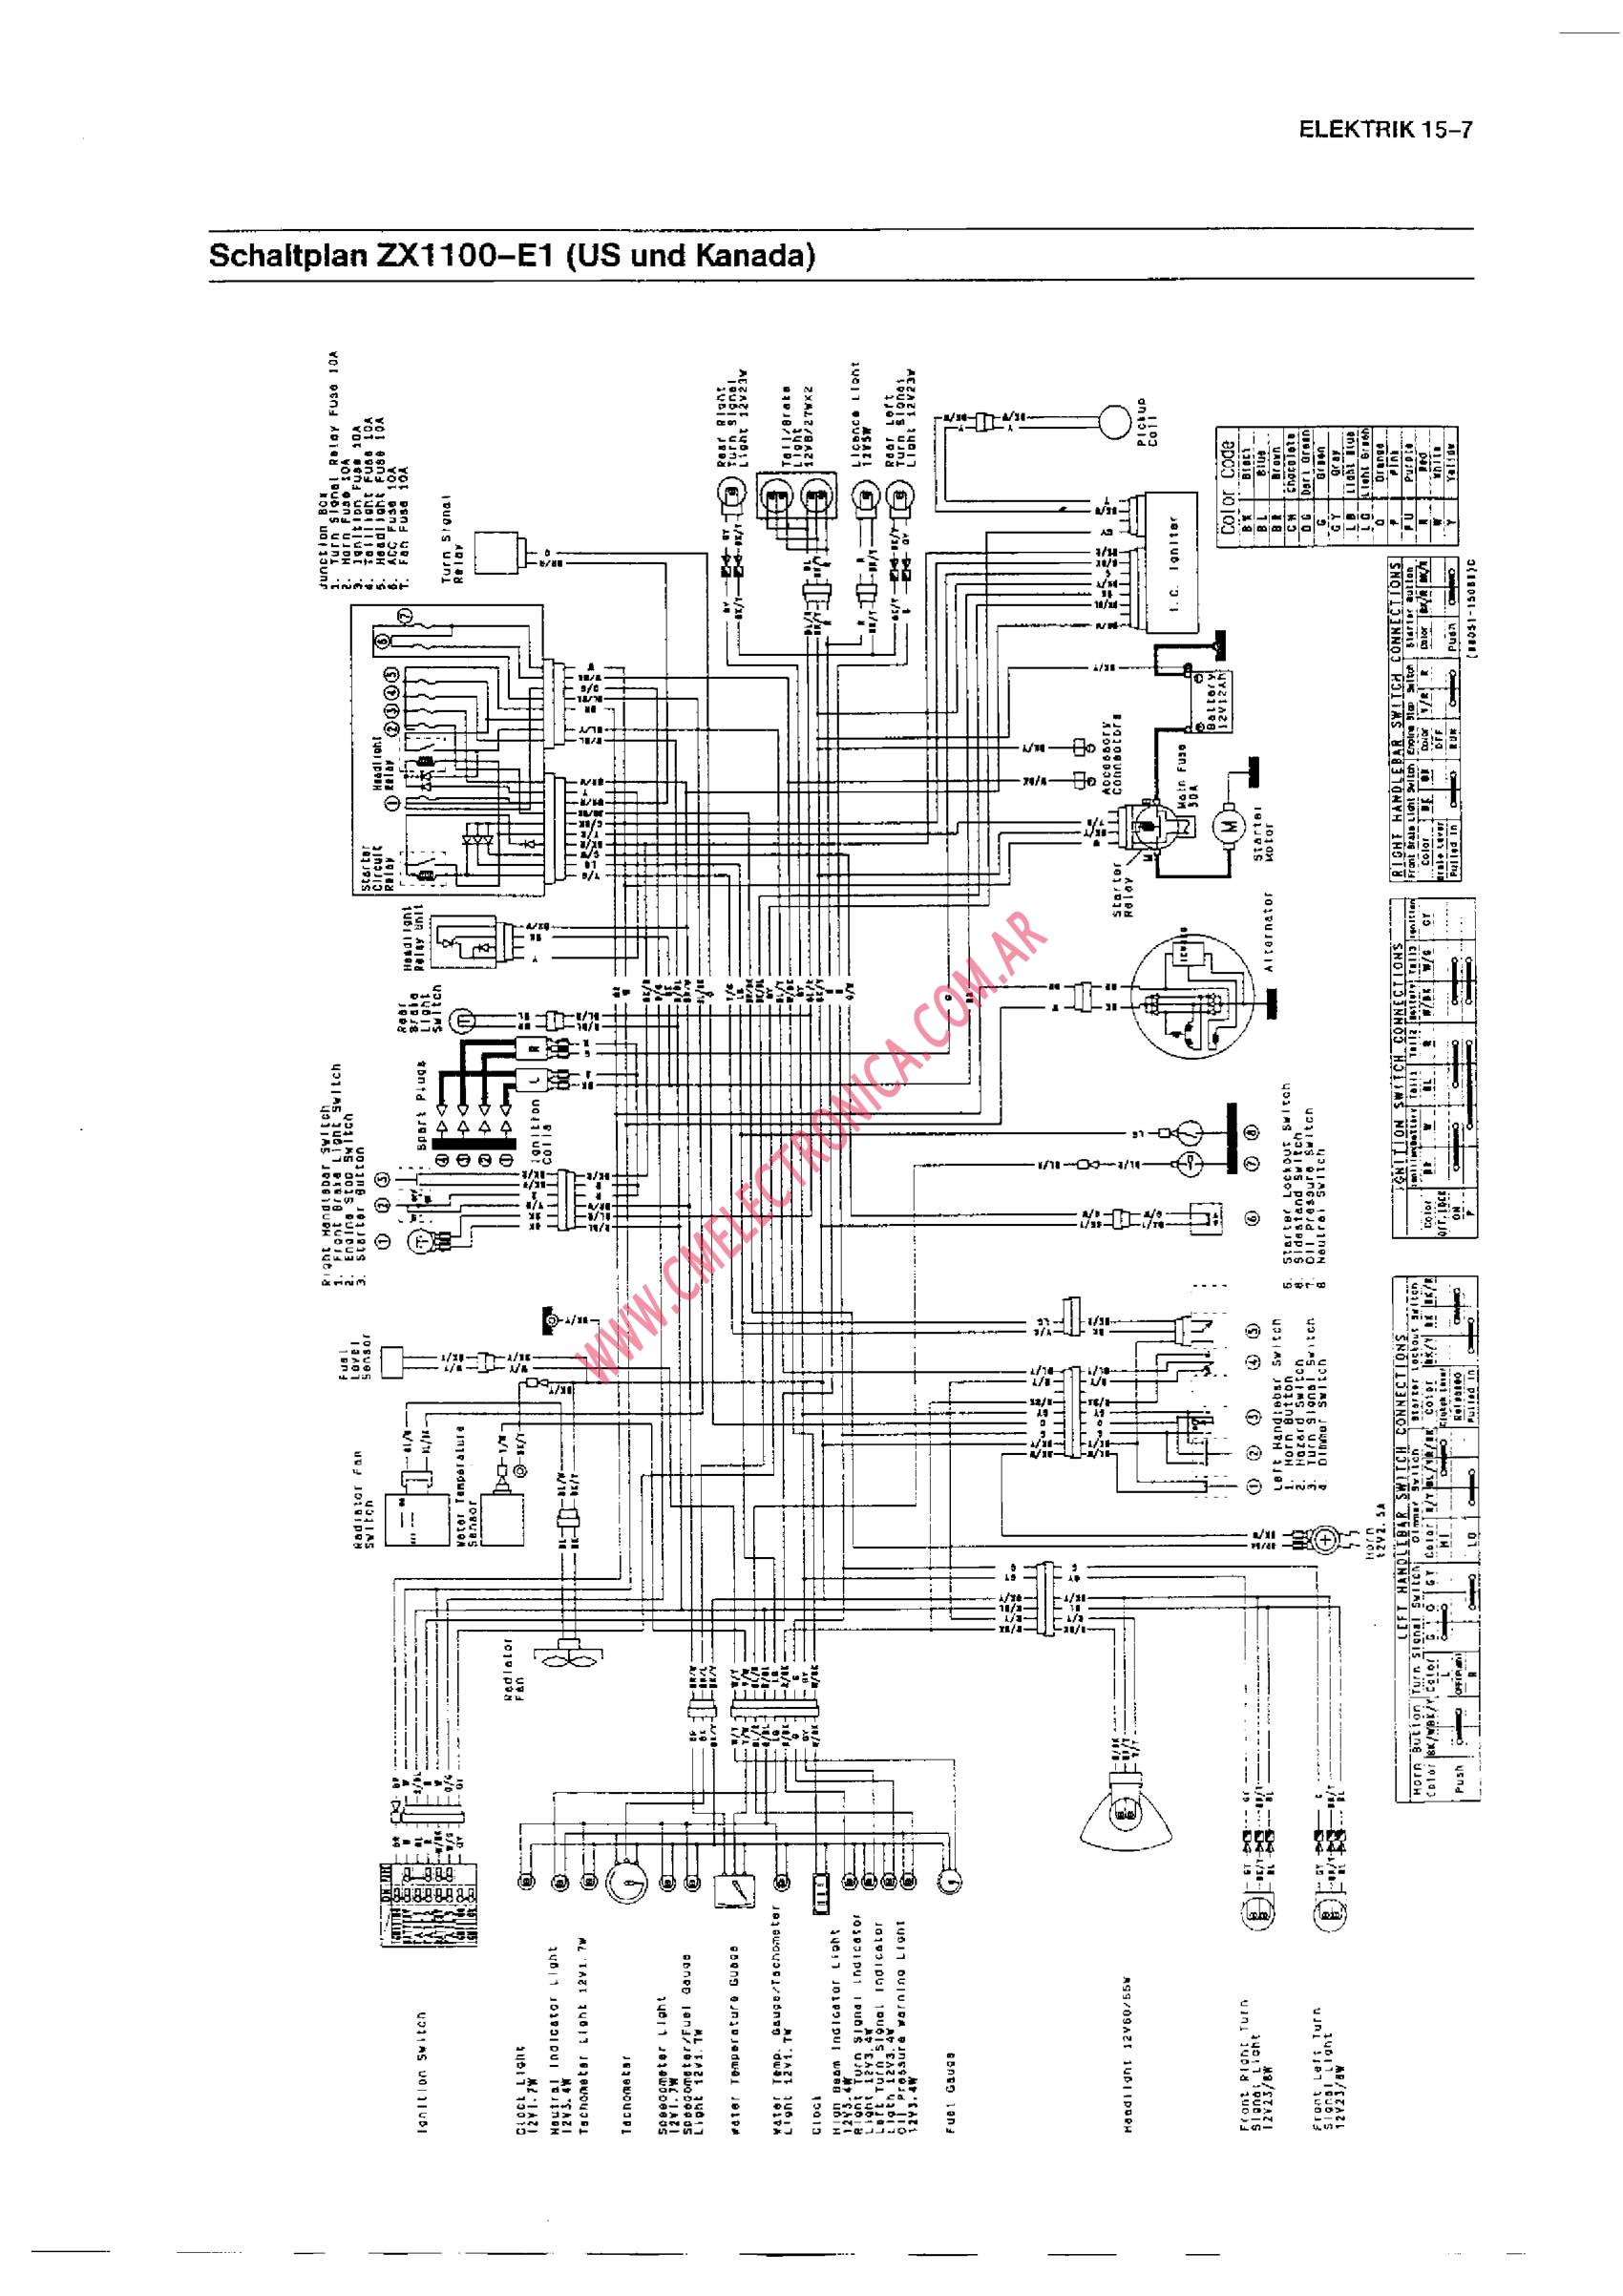 [DIAGRAM] Daytona Cdi Wiring Diagram FULL Version HD